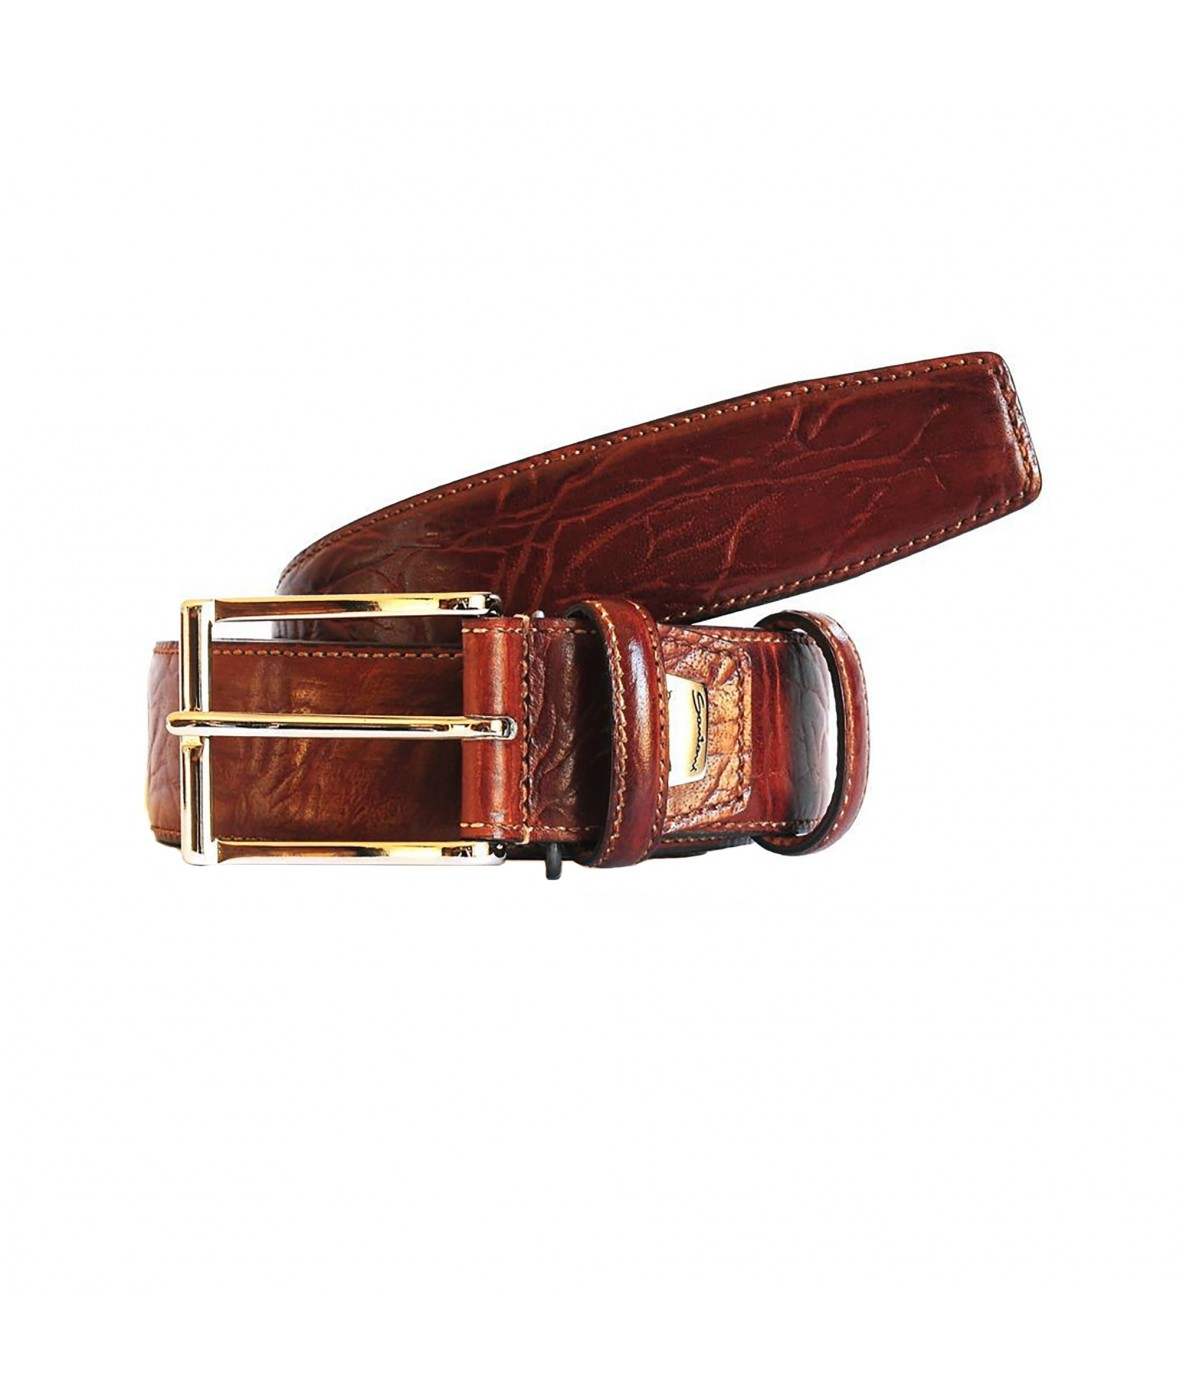 Santoni Belt Leather (385)